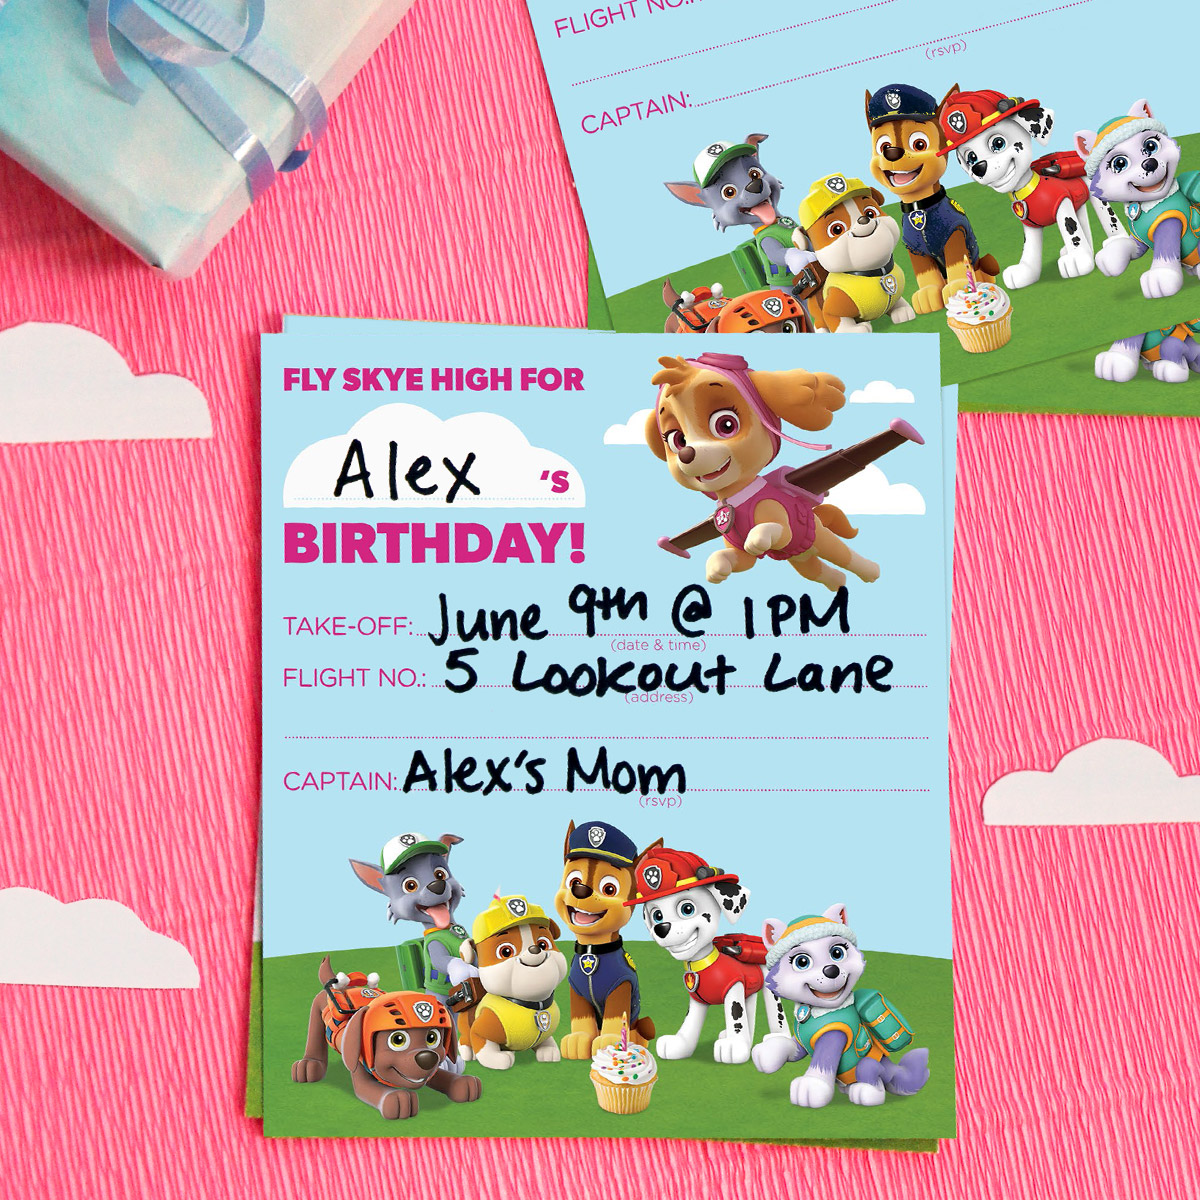 Nick Jr. Printable Birthday Party Invitations | Nickelodeon Parents